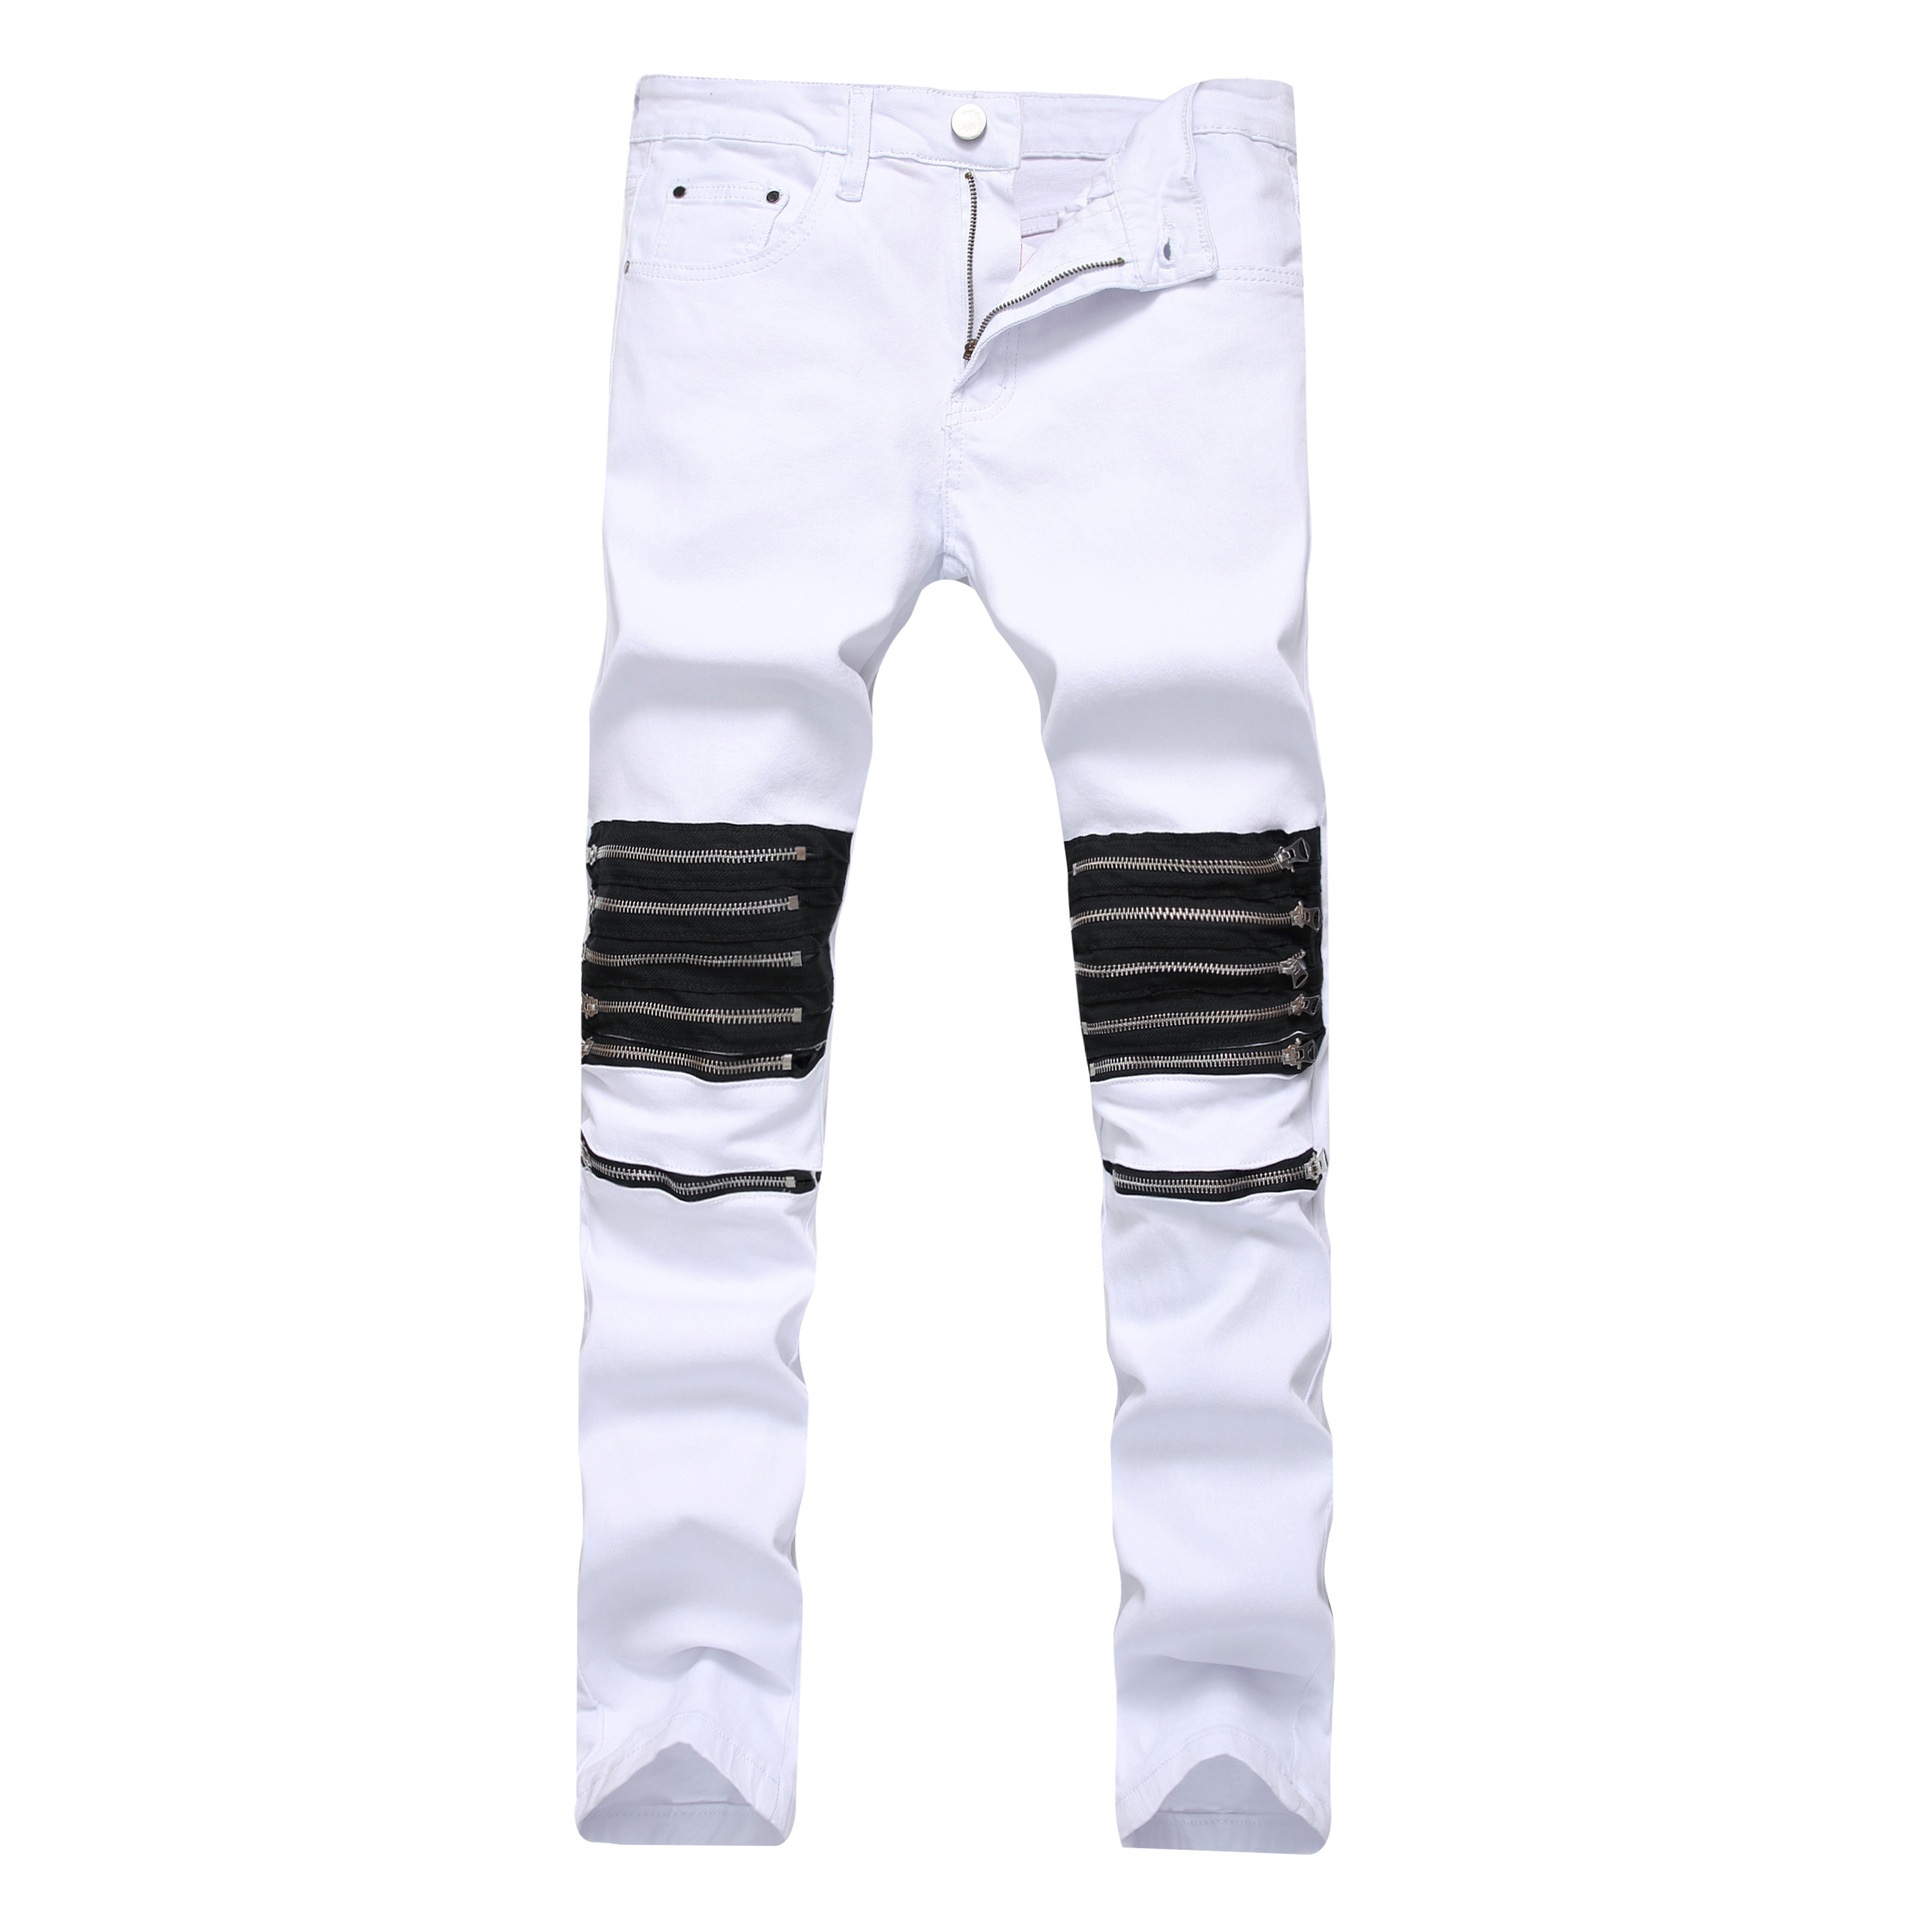 New 2018 Mens broken holes, decorative zippers, casual jeans, white red fashion, North American mens stretch pants.